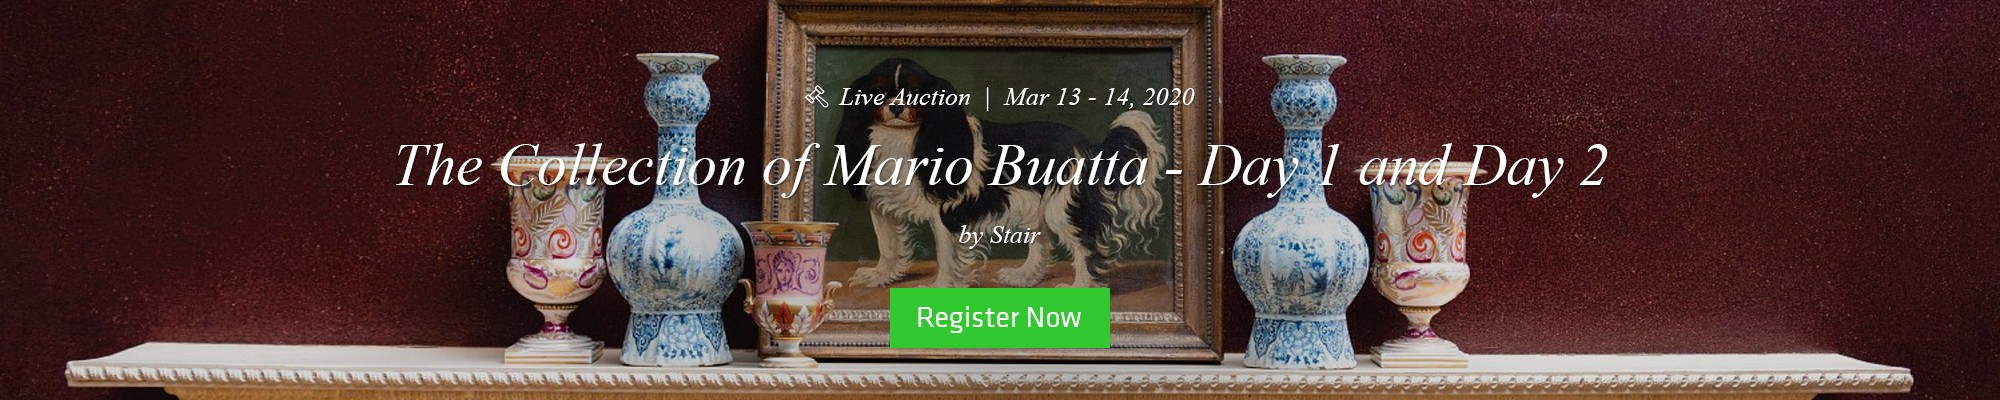 Get Ready for The Collection of Mario Buatta. Pre-register Now!